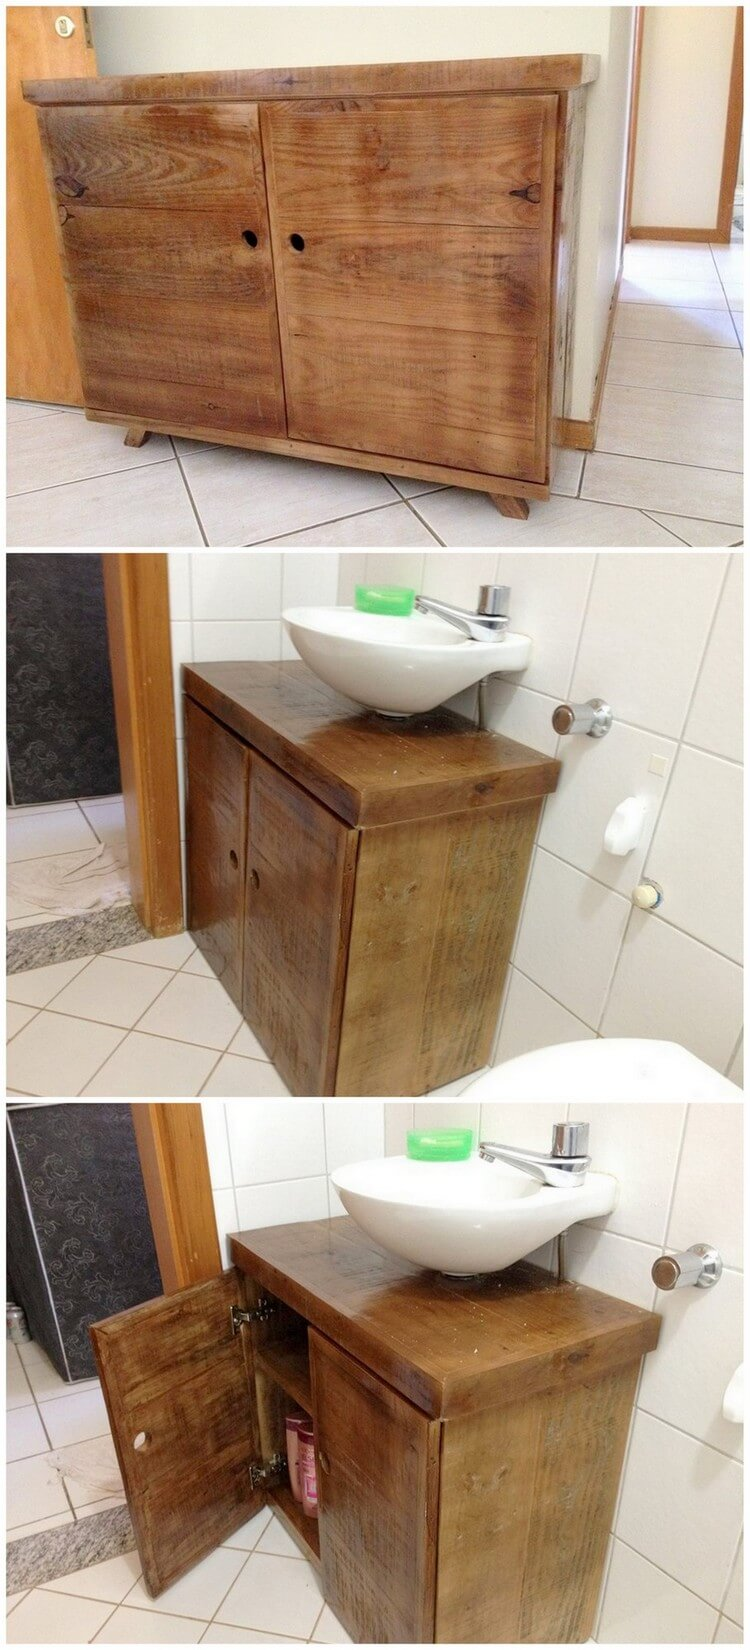 35 Unique Ways To Recycle Old Wooden Pallets Pallet Wood